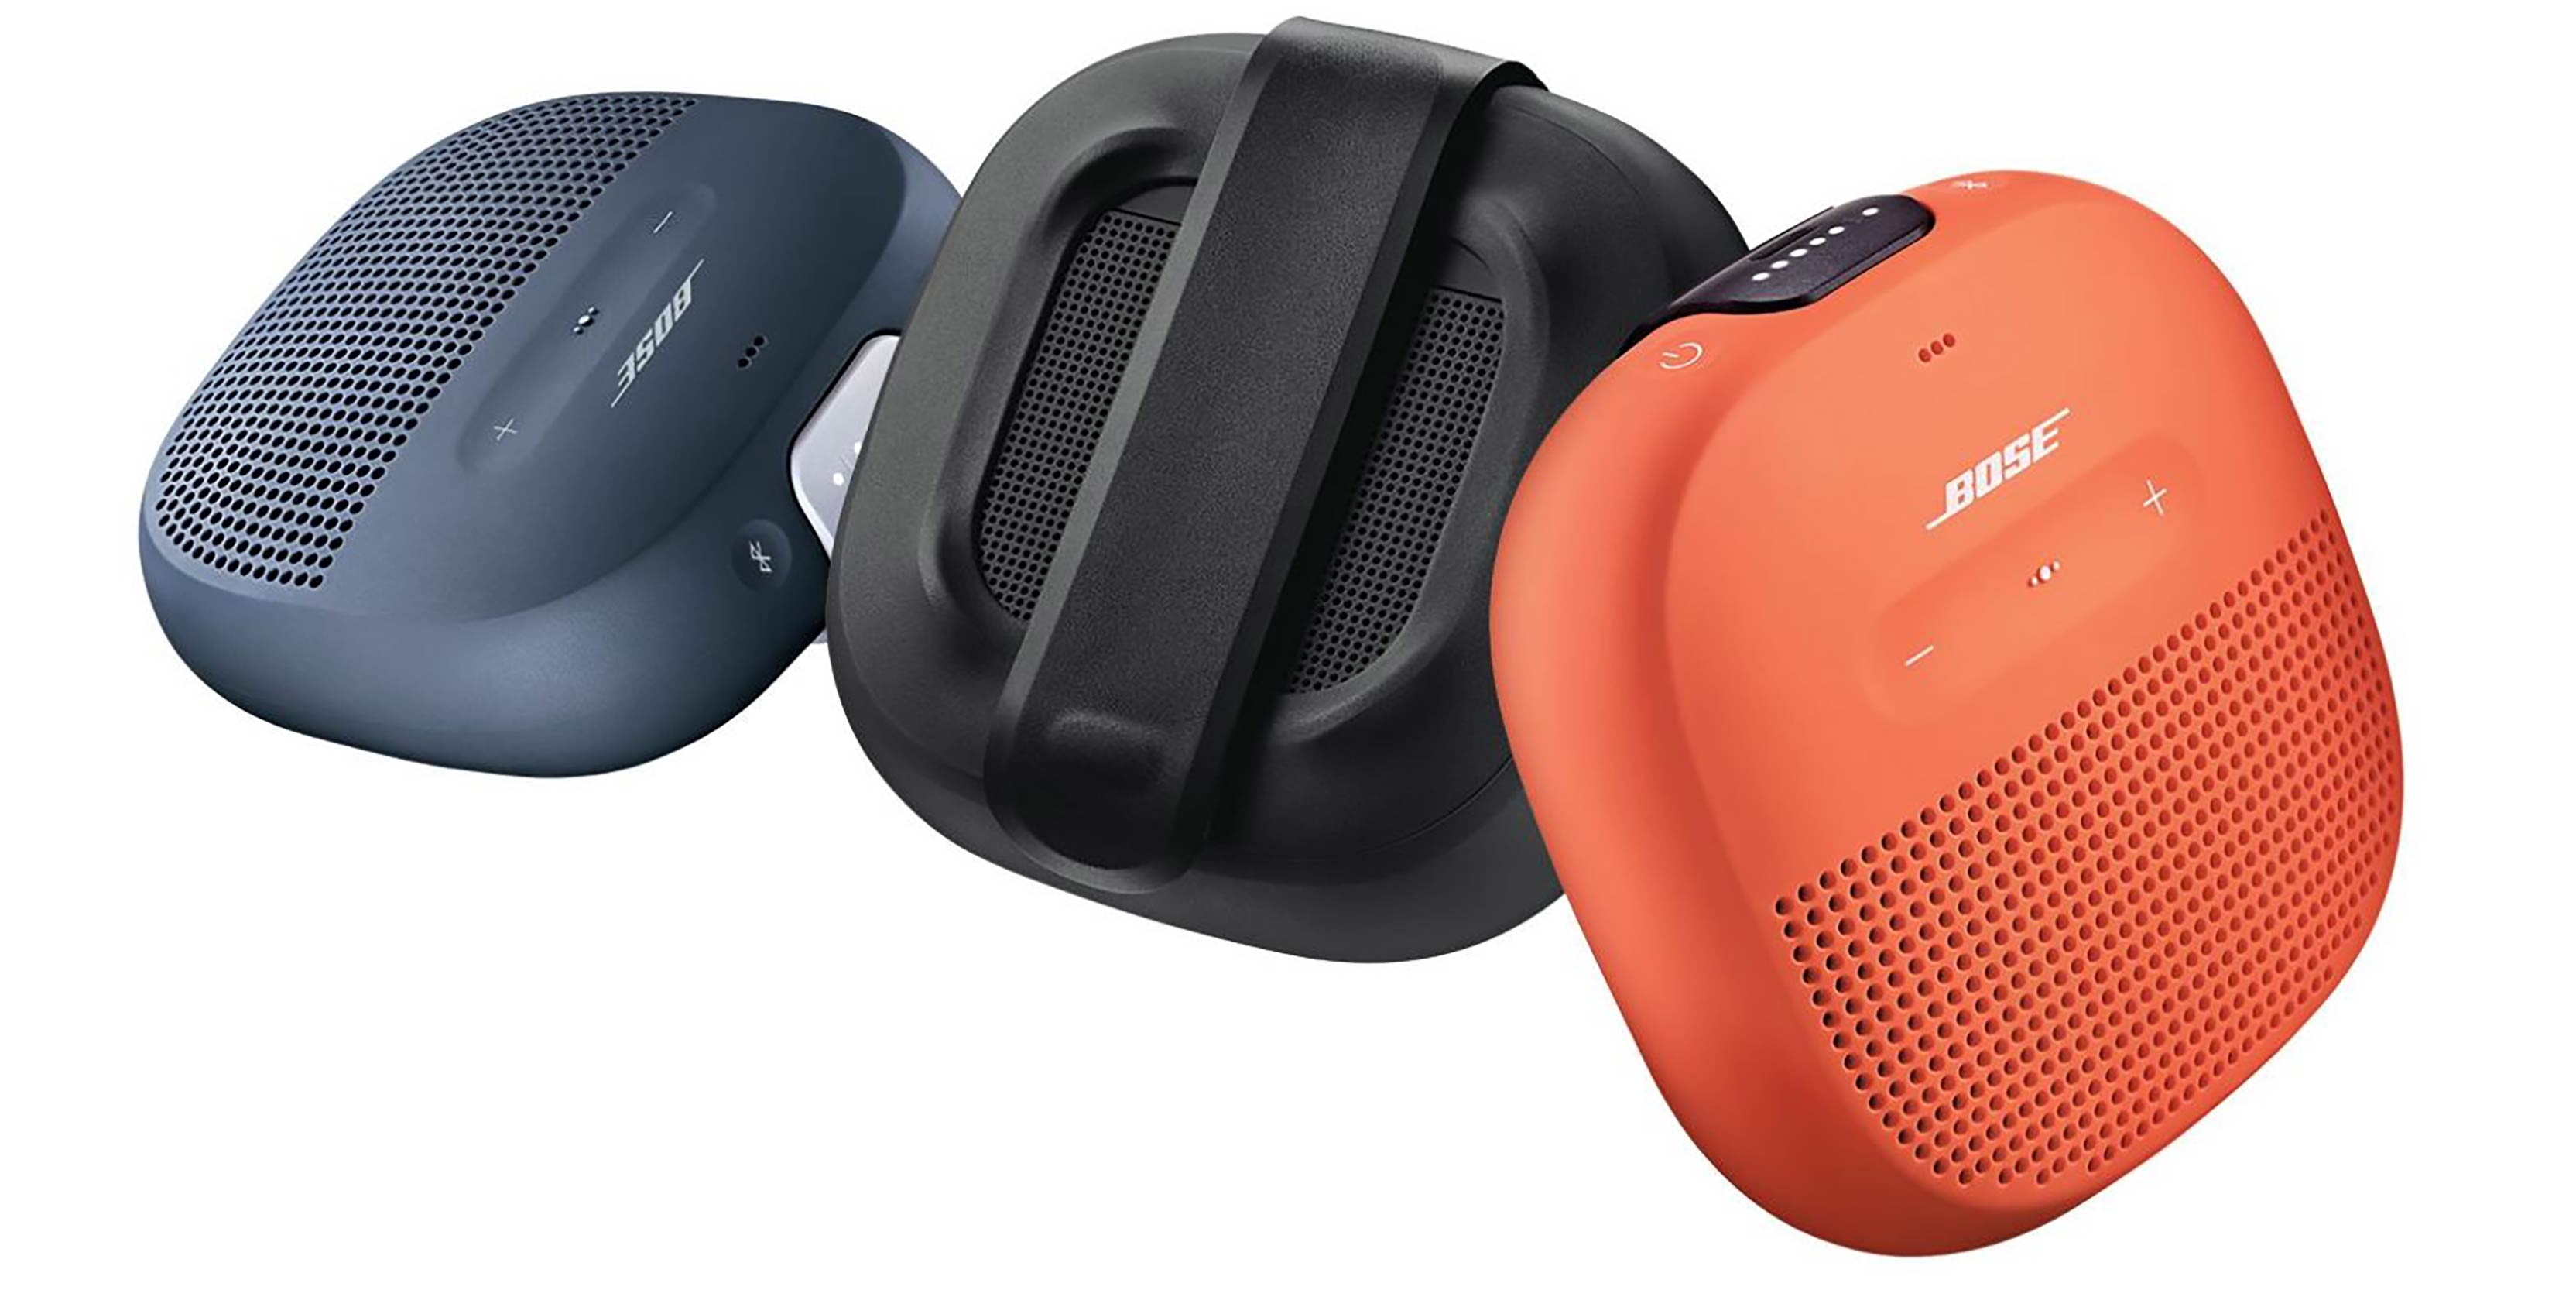 soundlink micro bluetooth speakers in three colours, black, blue and orange